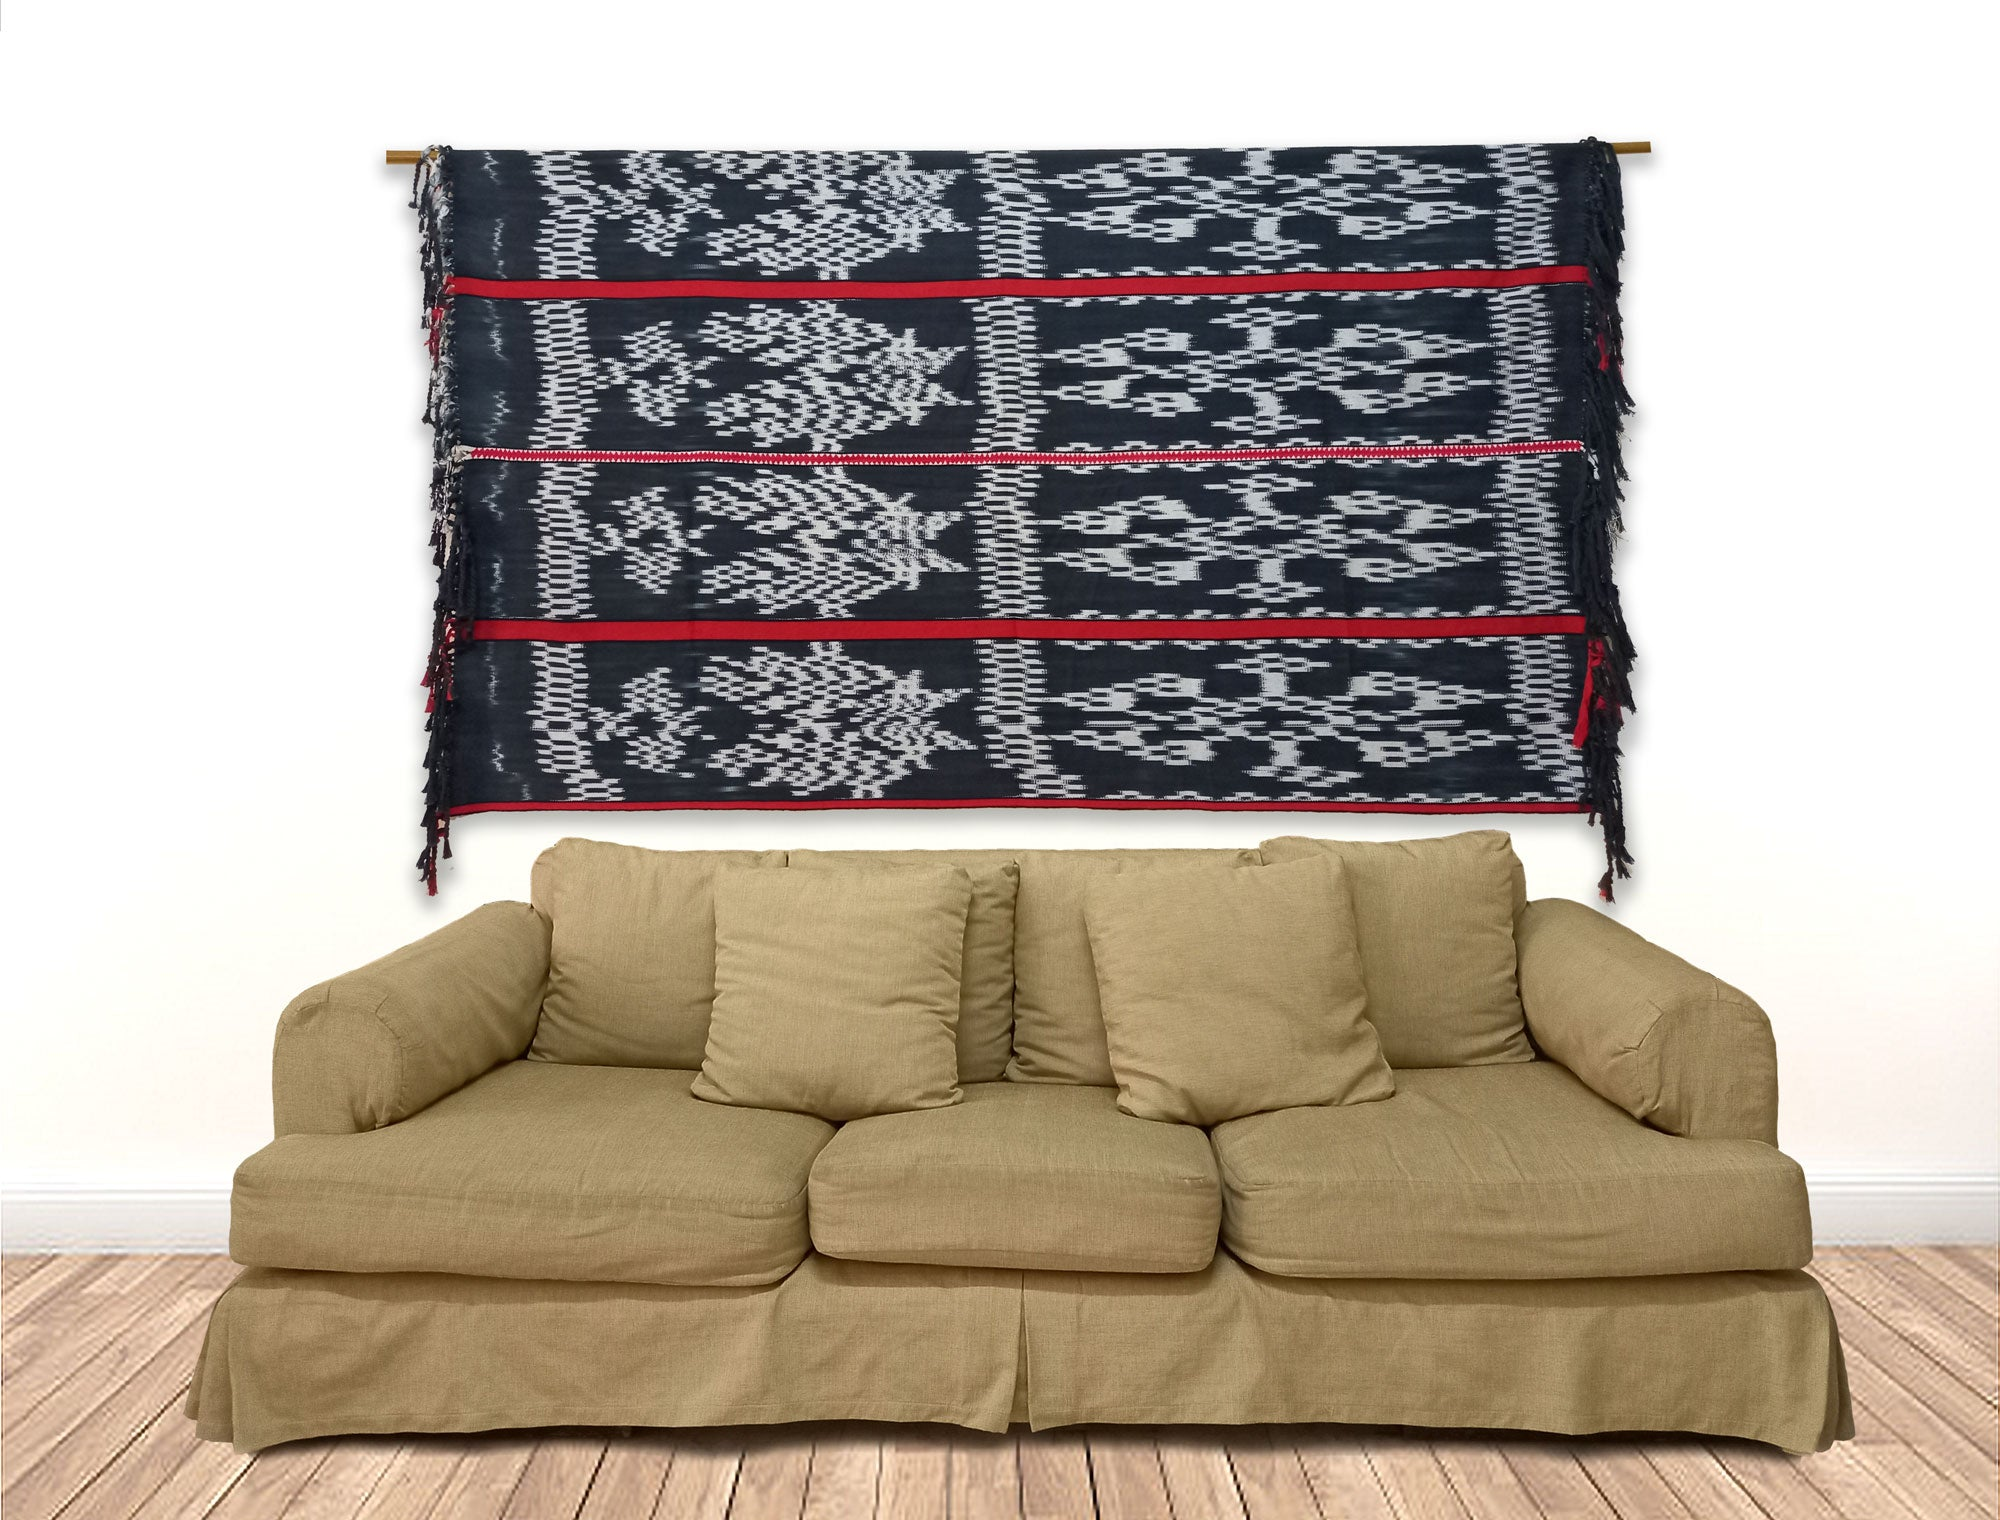 The Hinalupe blanket